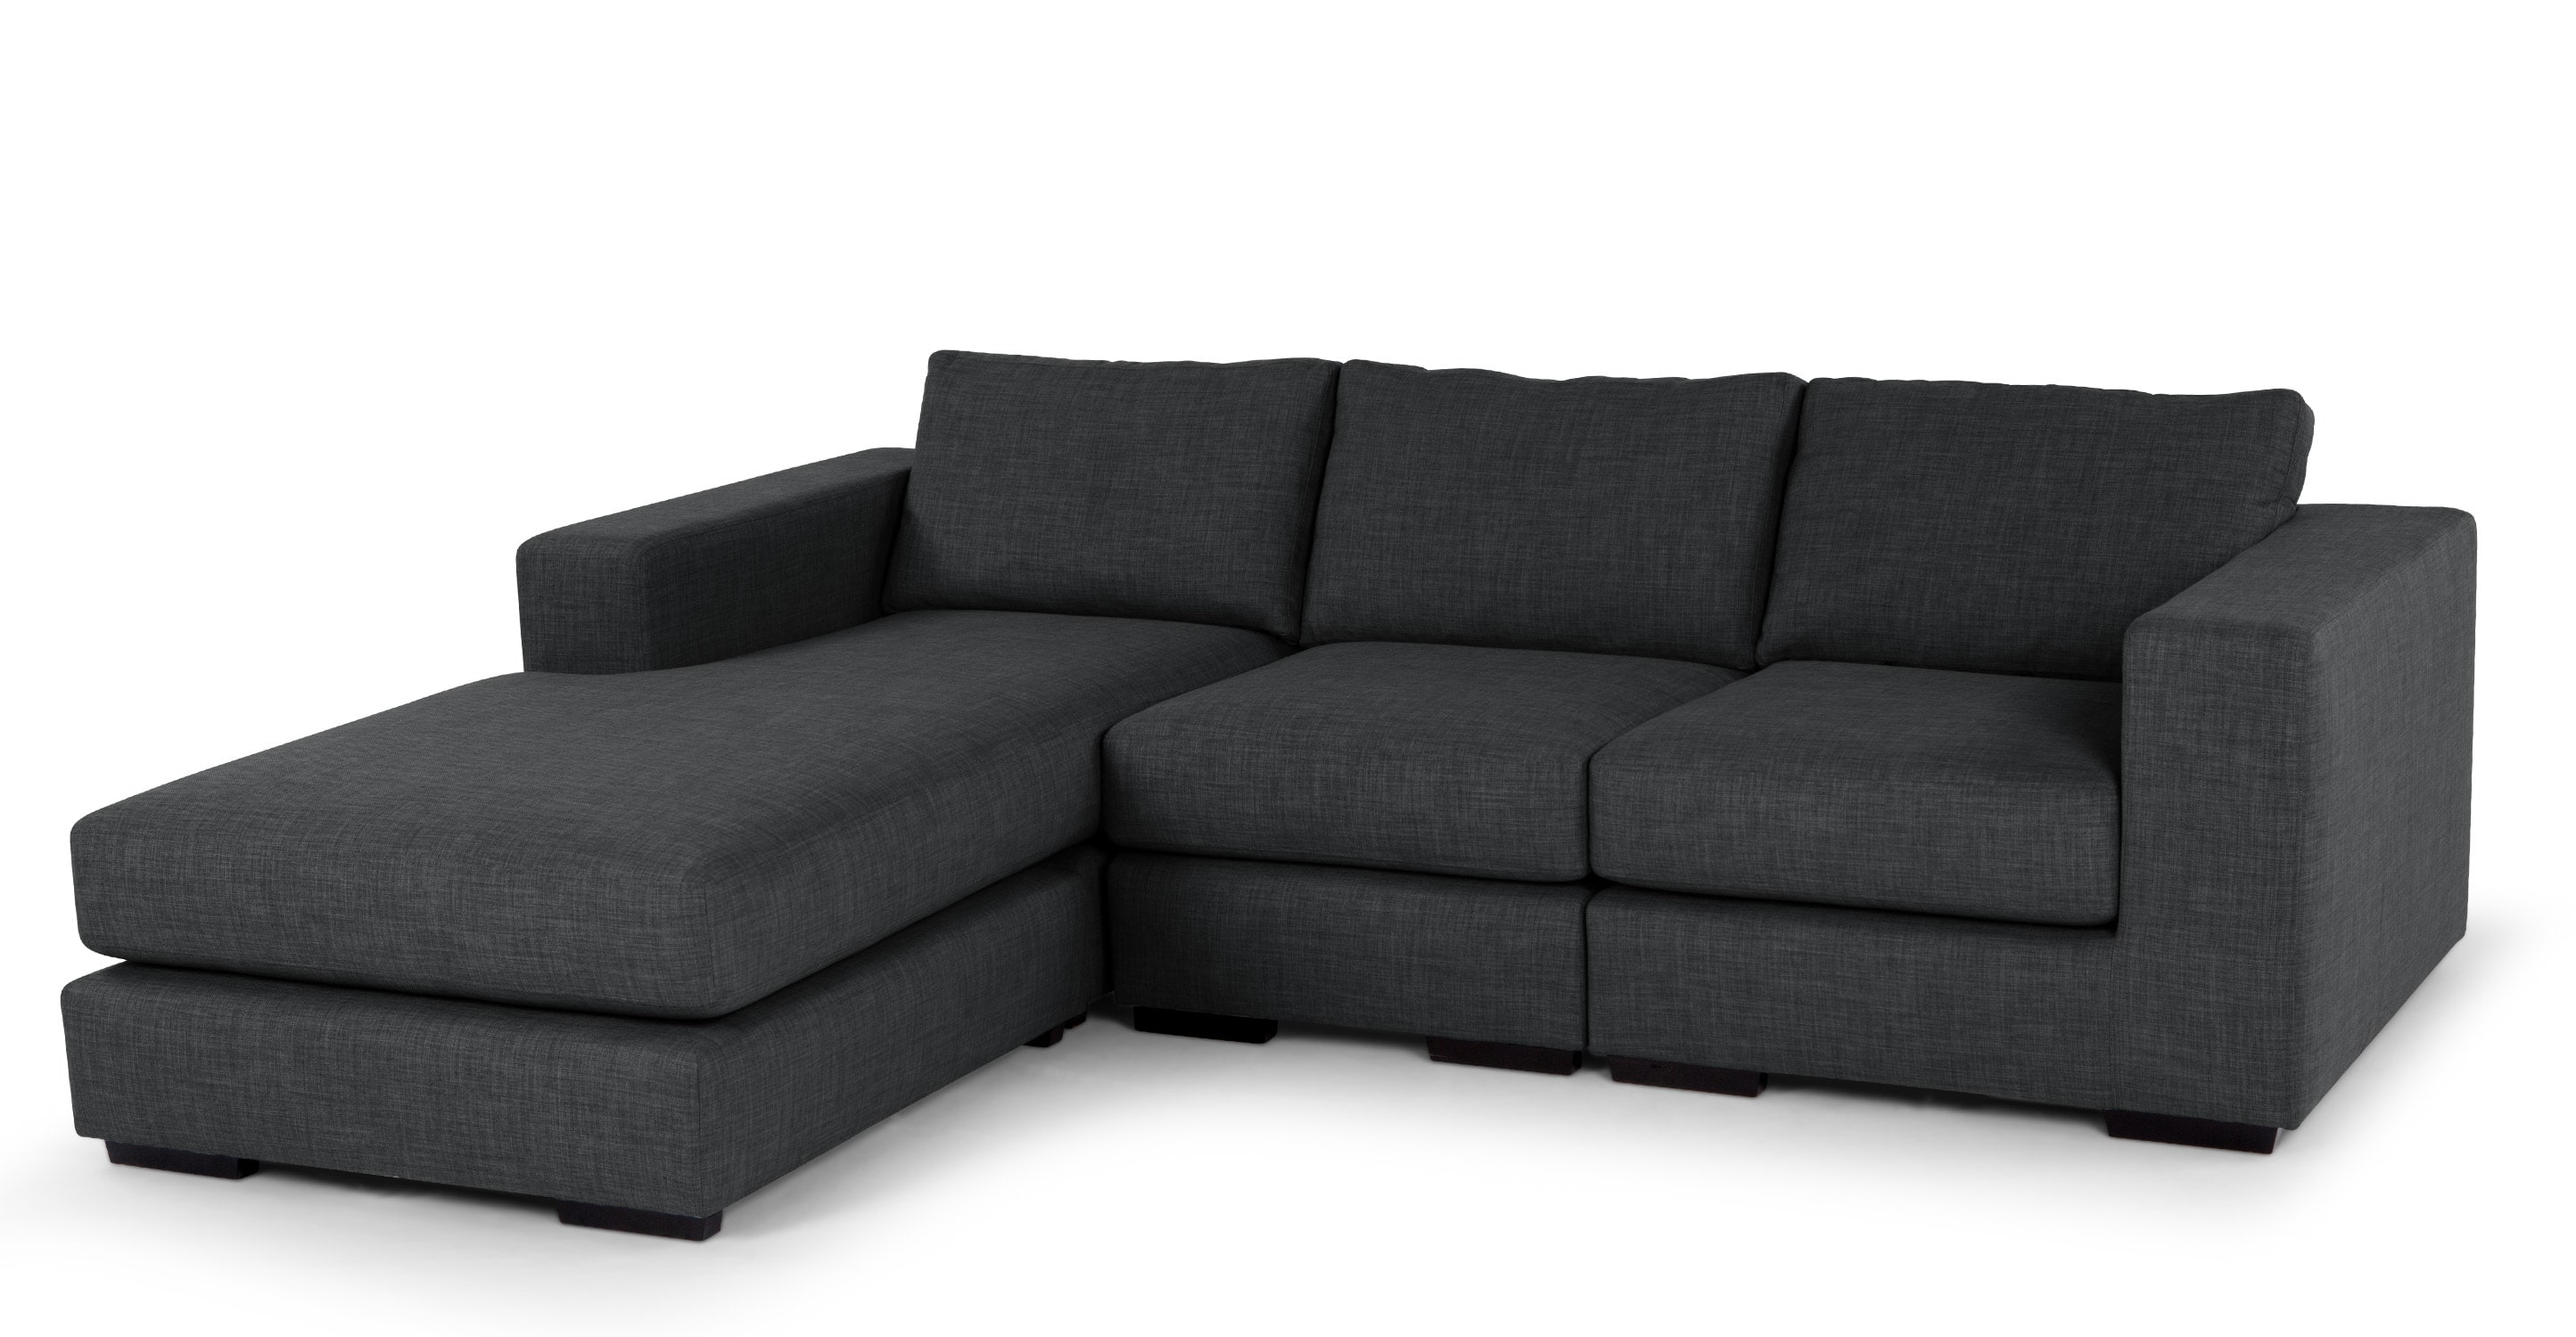 Modular Corner Sofa Hereo Sofa For Modular Corner Sofas (Image 7 of 15)